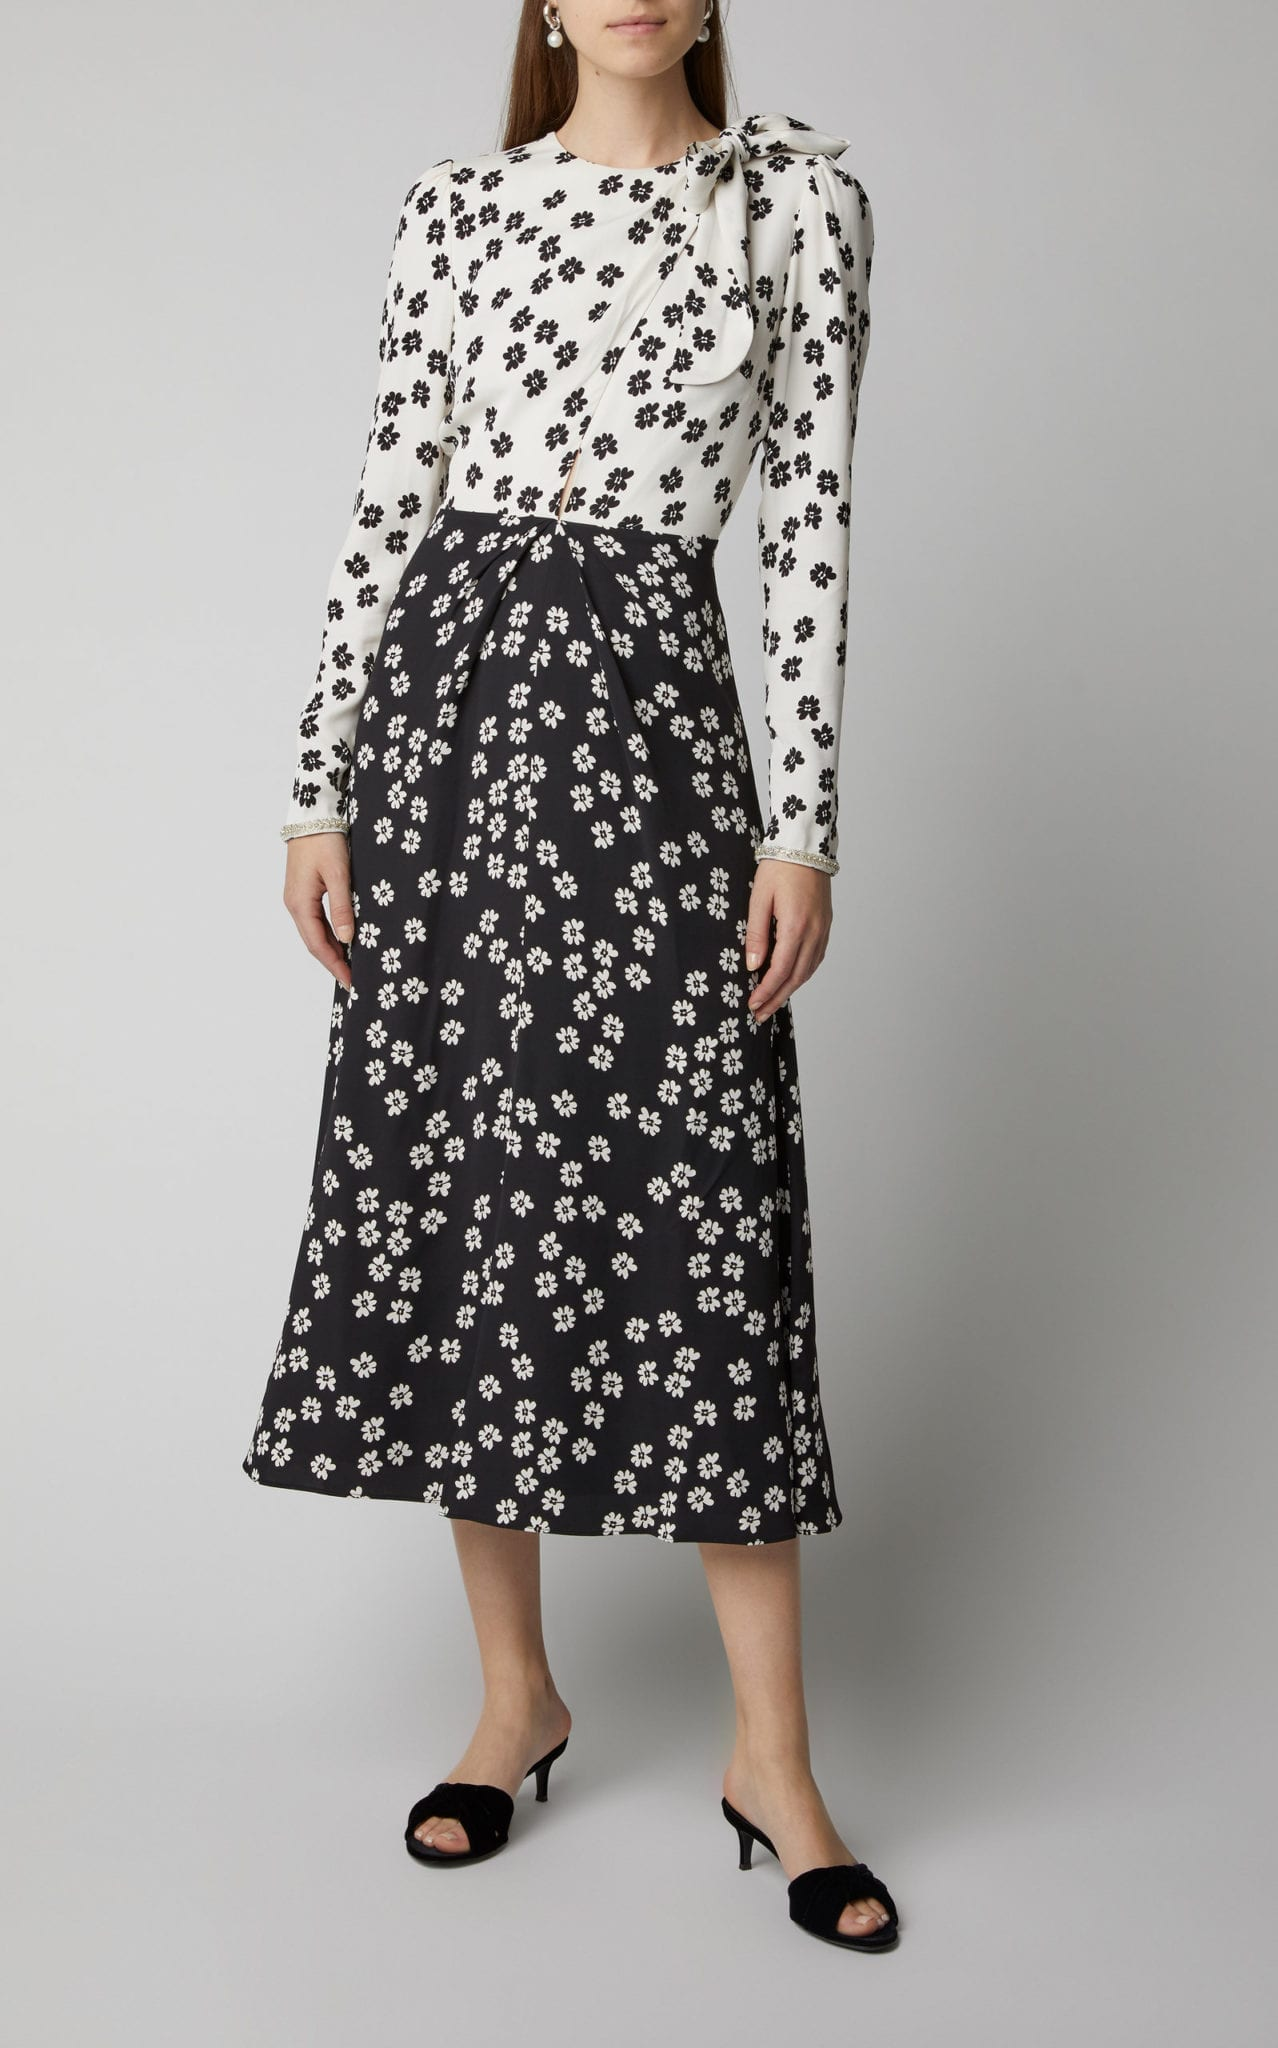 SELF PORTRAIT Two-Tone Floral-Print Crepe Midi Dress